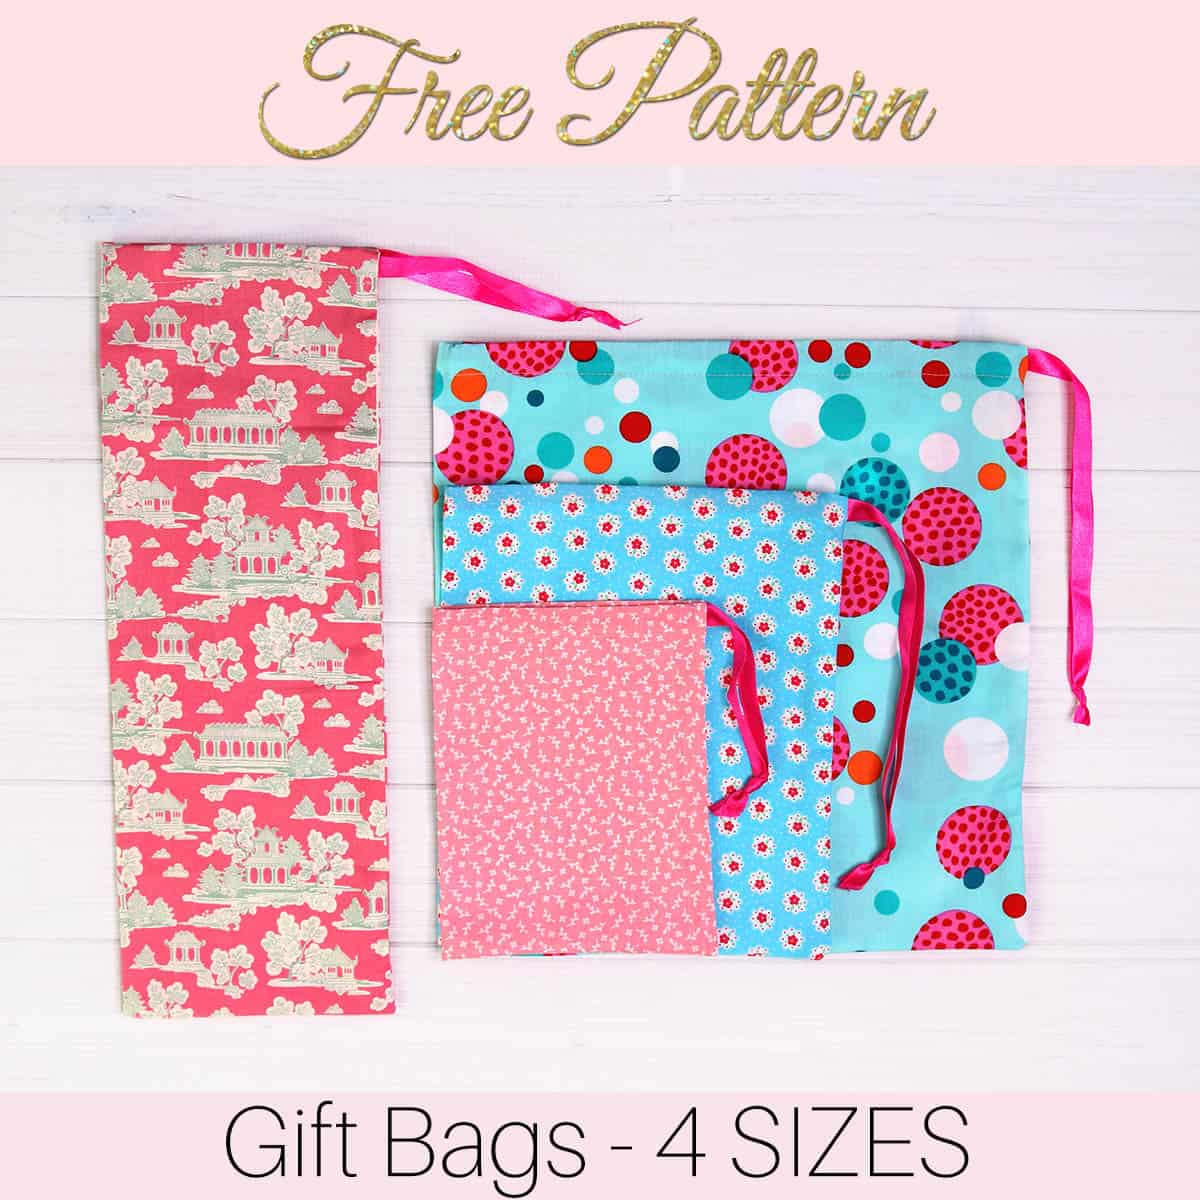 How To Make Gift Bags From Fabric In 5 Minutes